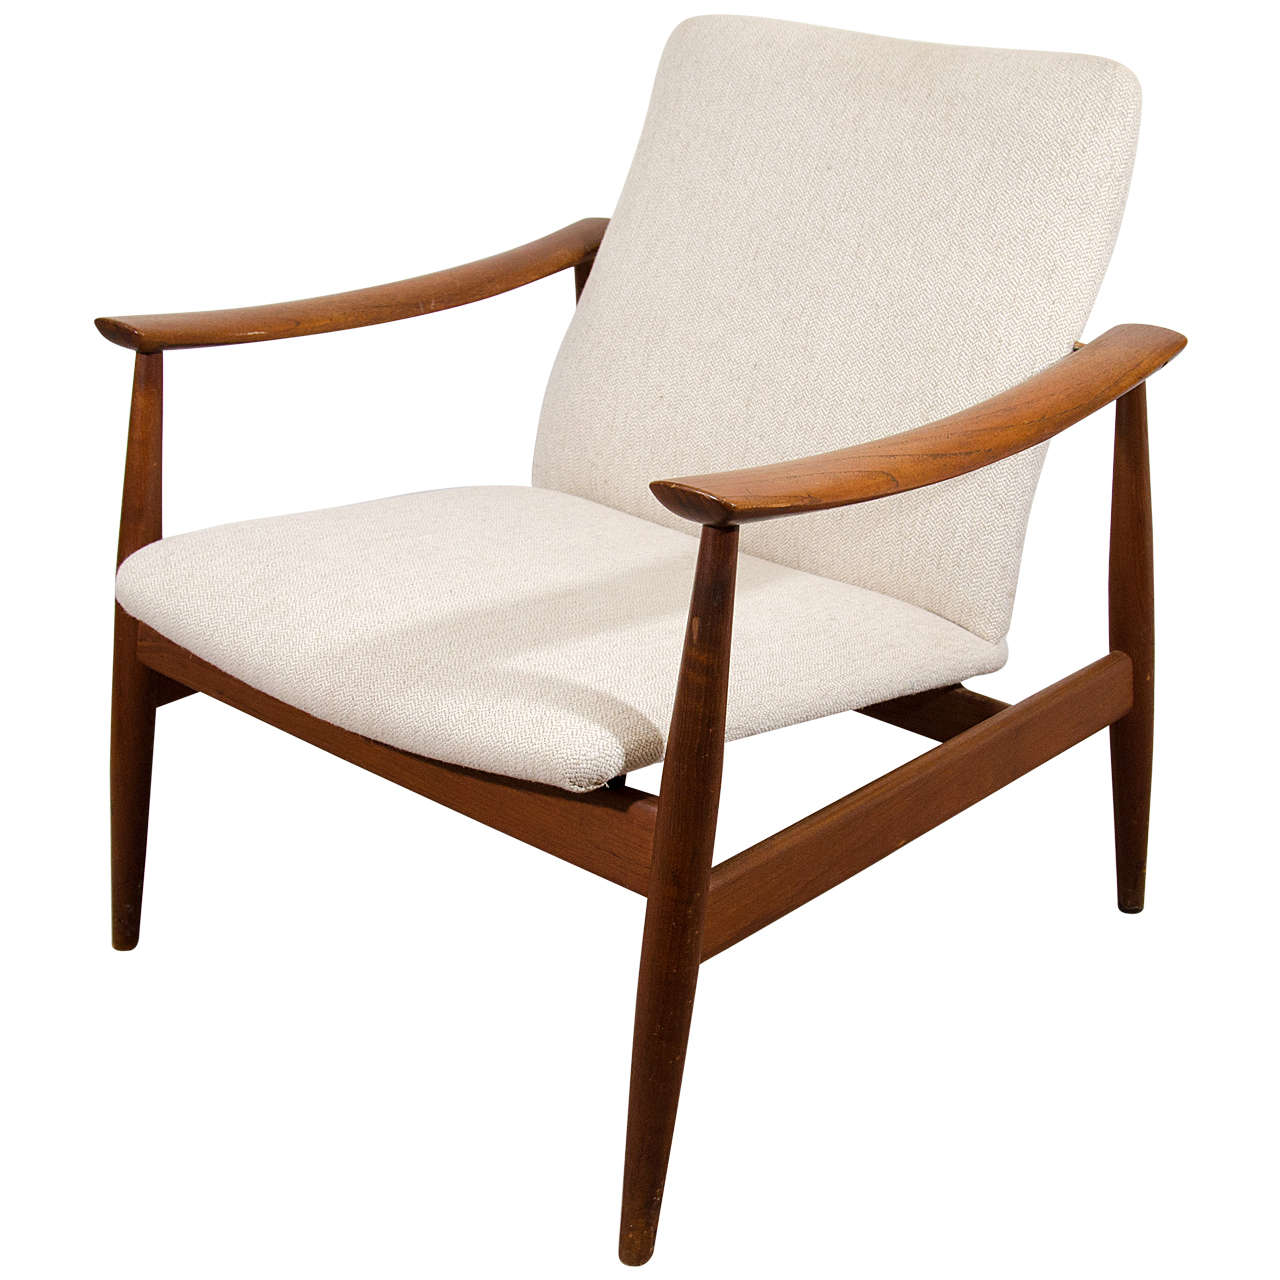 Captivating Midcentury Lounge Chair By Finn Juhl For France U0026 Sons 1